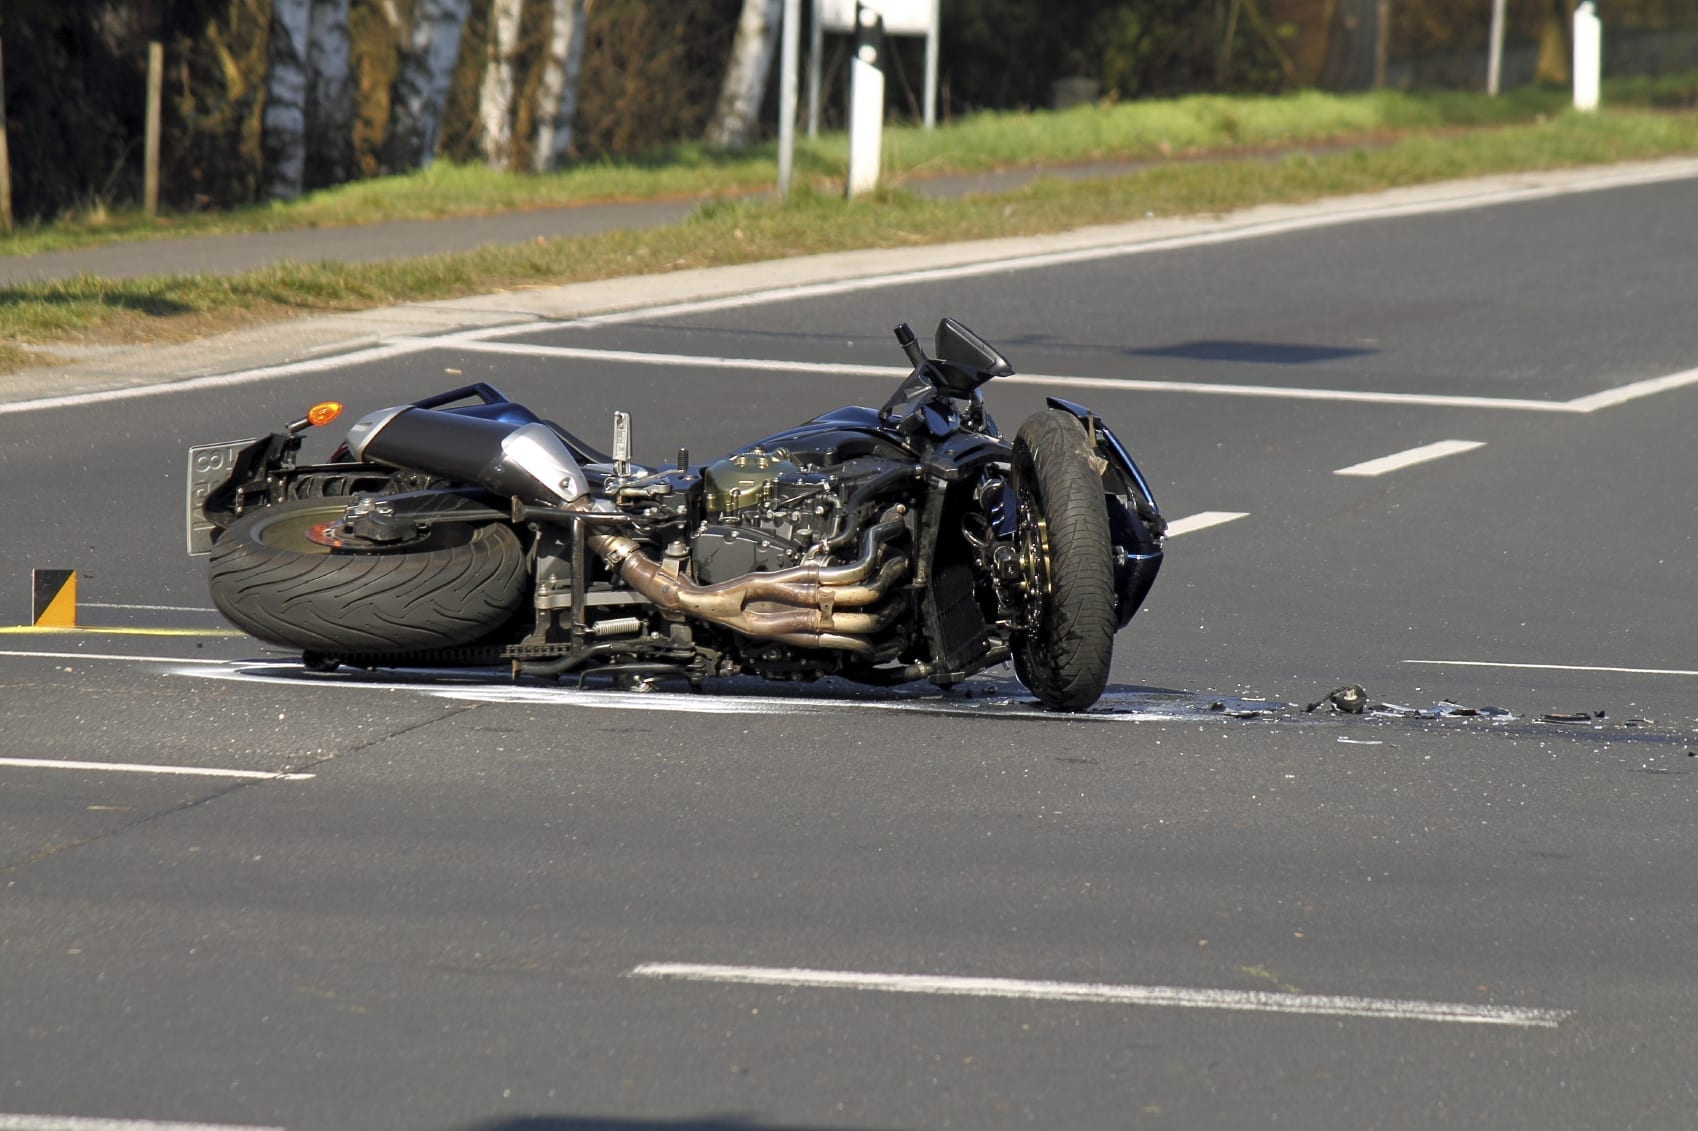 Aftermath of Motorcycle Accident Stock Photo